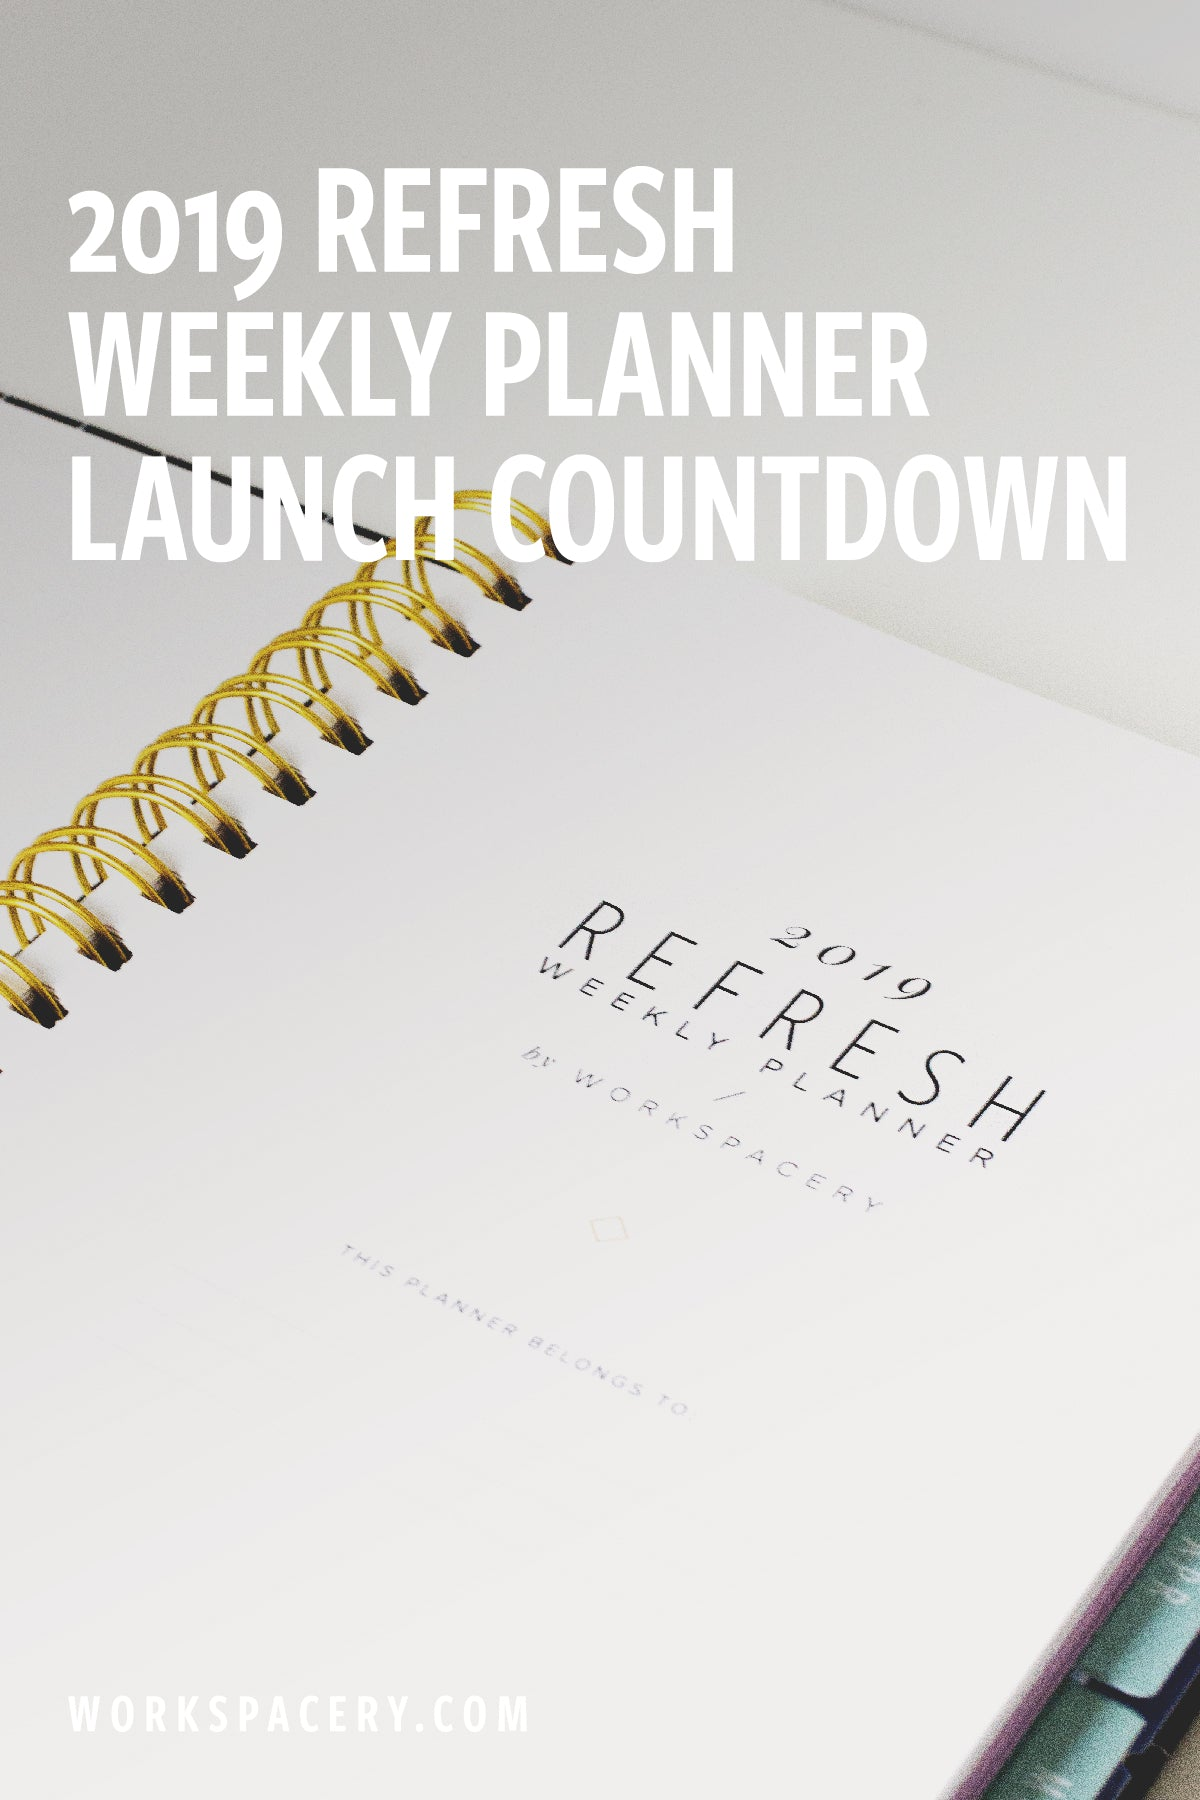 2019 Refresh Weekly Planner Launch Countdown